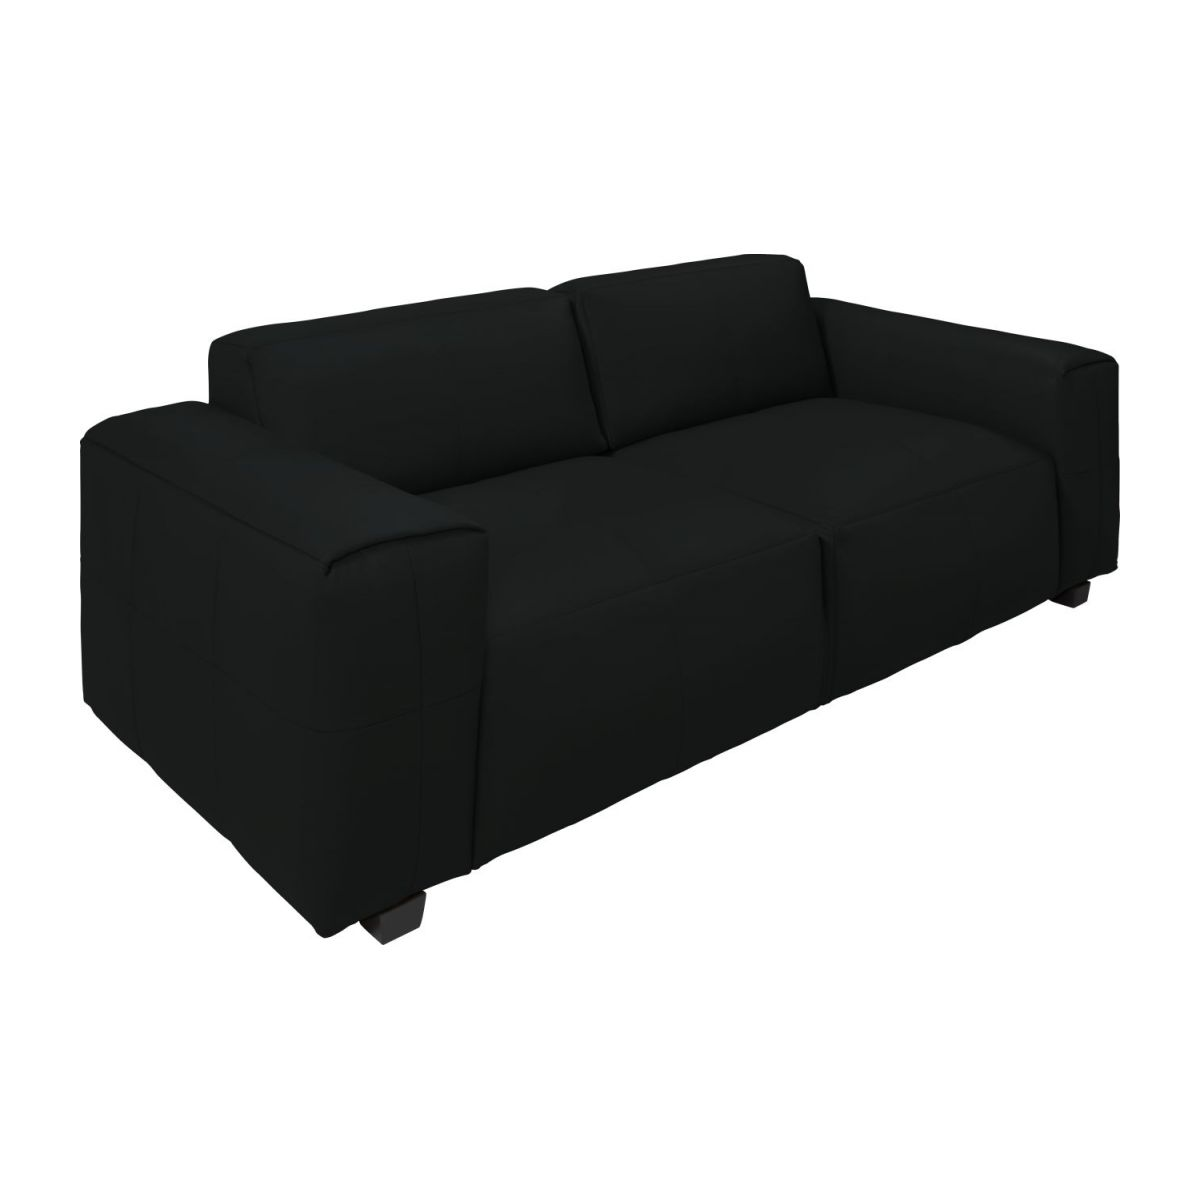 4 seater sofa in Savoy semi-aniline leather, platin black n°1